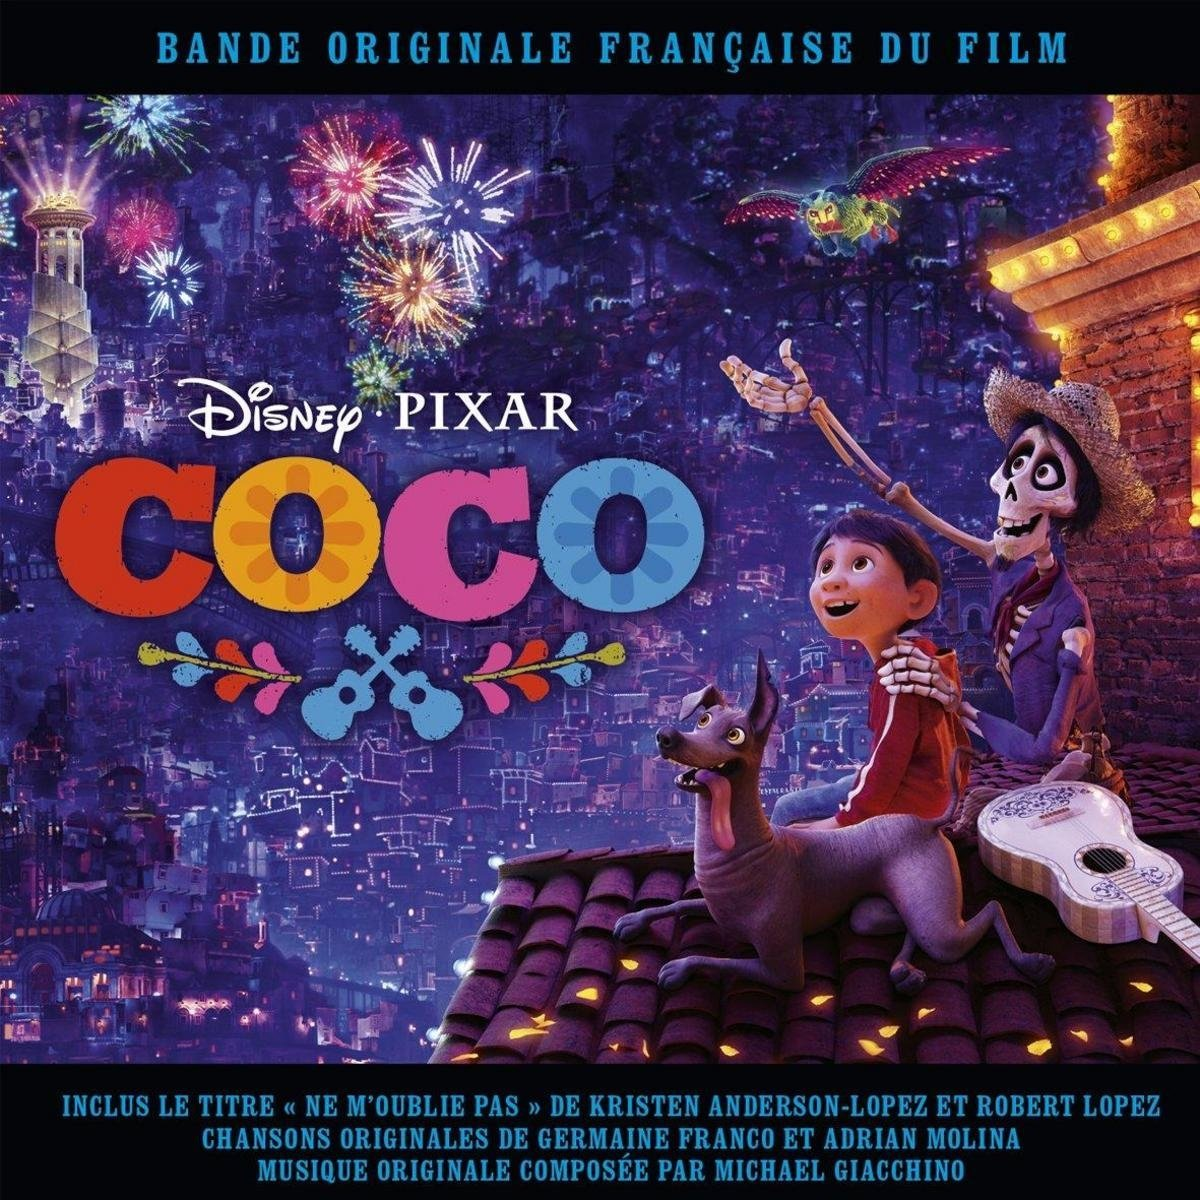 coco bande originale soundtrack disney pixar